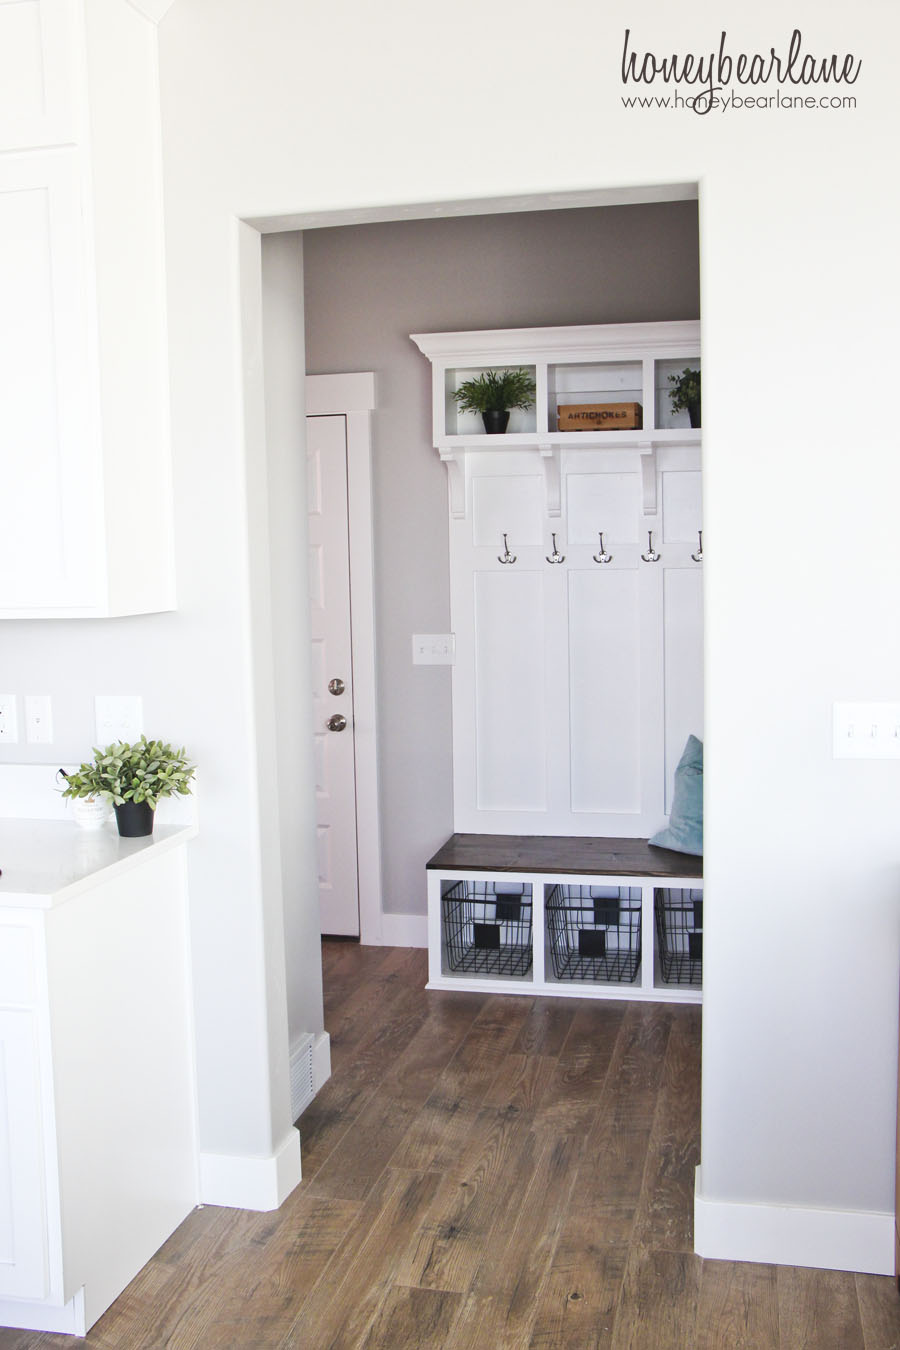 Diy mudroom bench honeybear lane Mud room benches